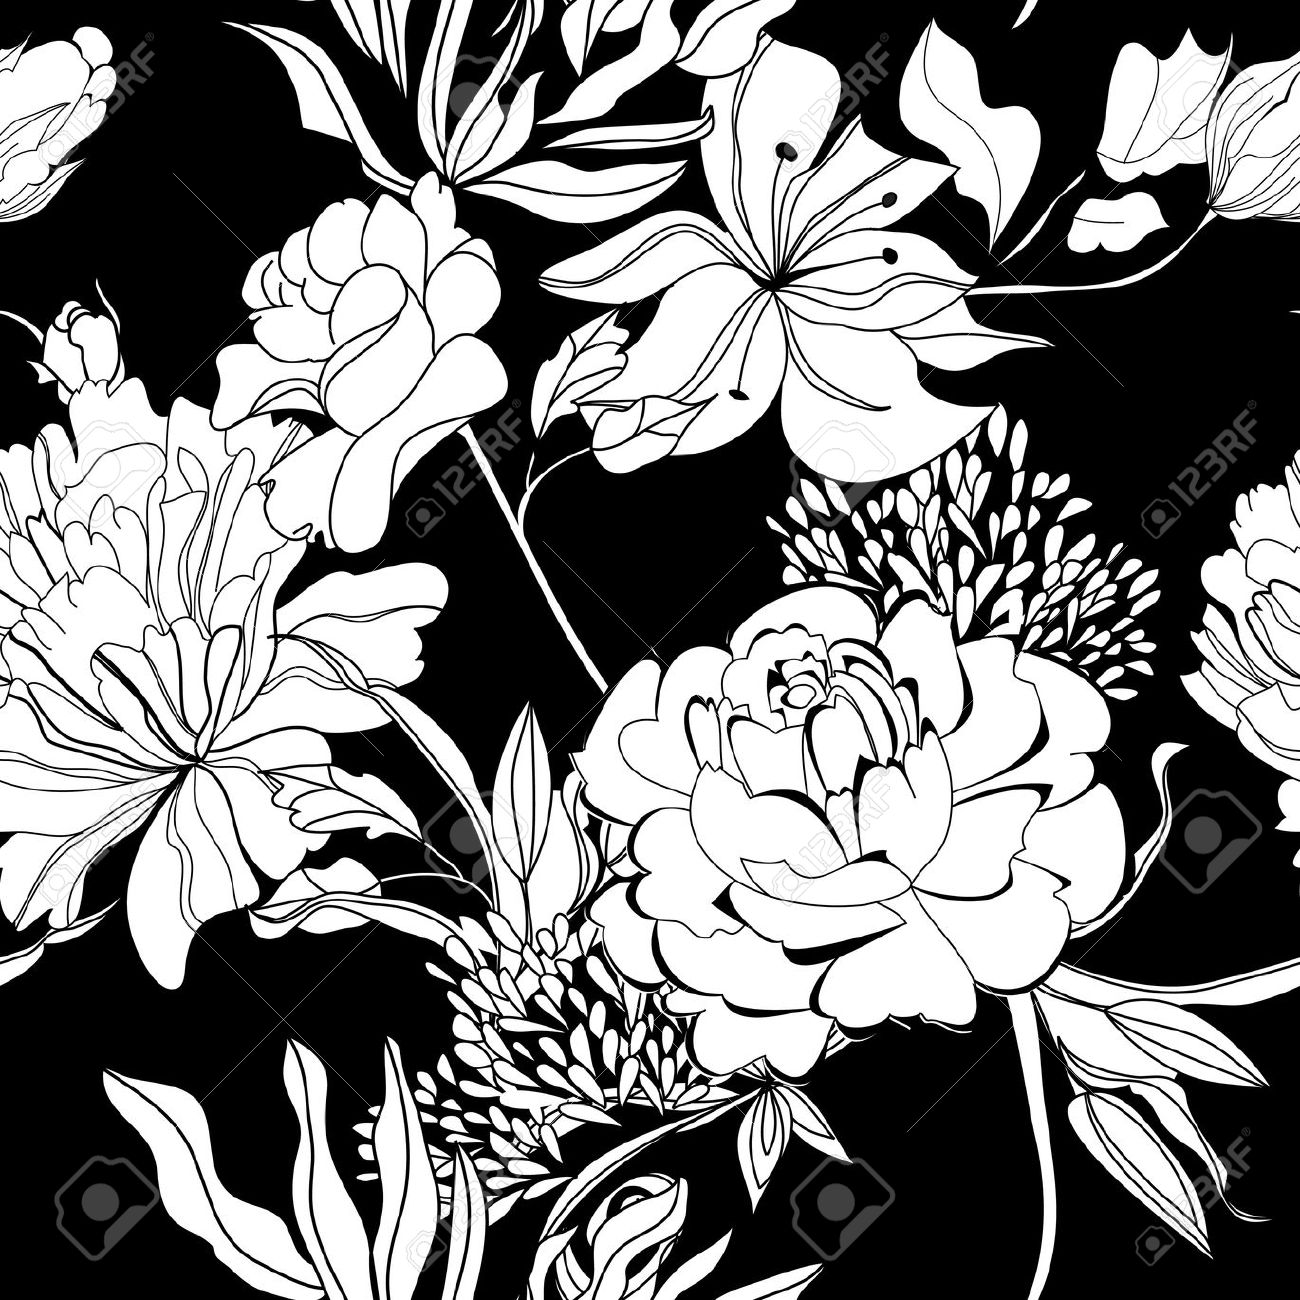 Flowers Drawing Black And White At Getdrawings Free For